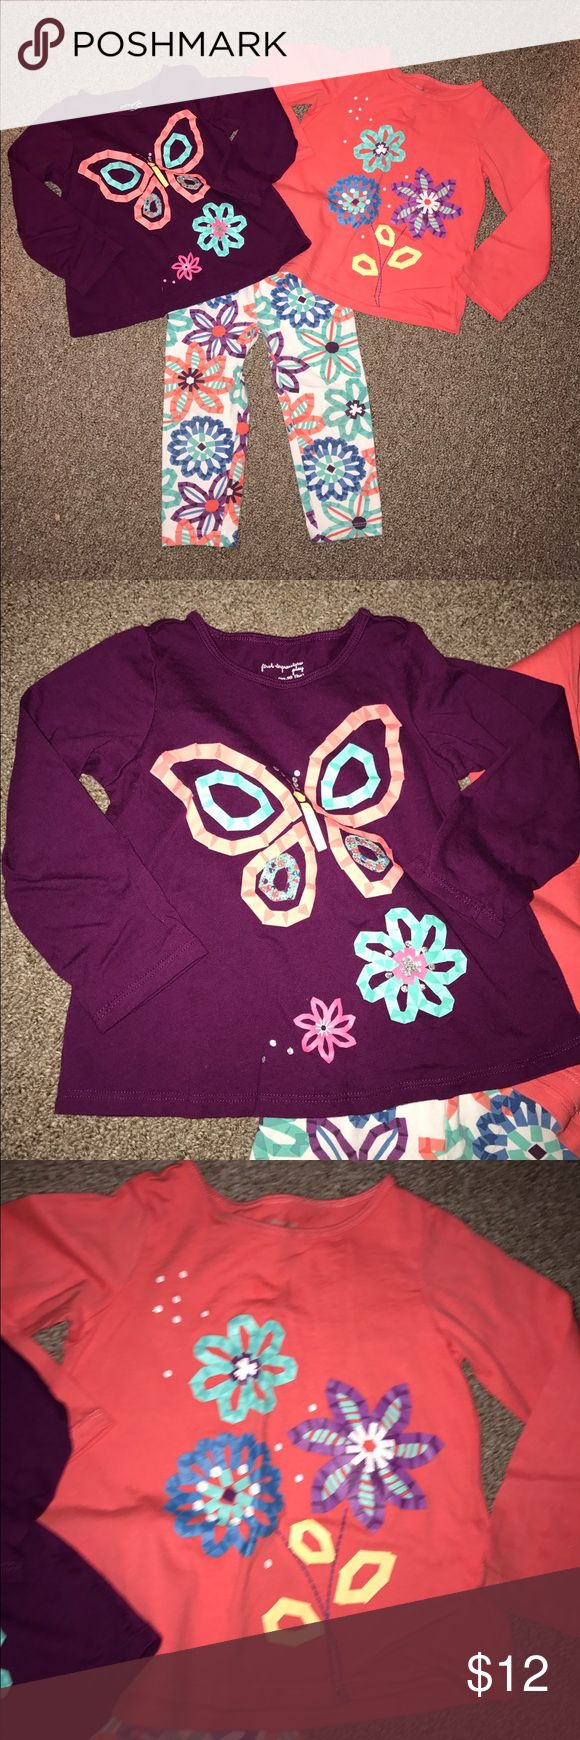 Double Floral Outfit First Impressions size:24m white pants with large blue, plum, teal, and coral colored flowers matched with long sleeved plum shirt with a butterfly and flowers and a long sleeved coral shirt with flowers First Impressions Matching Sets